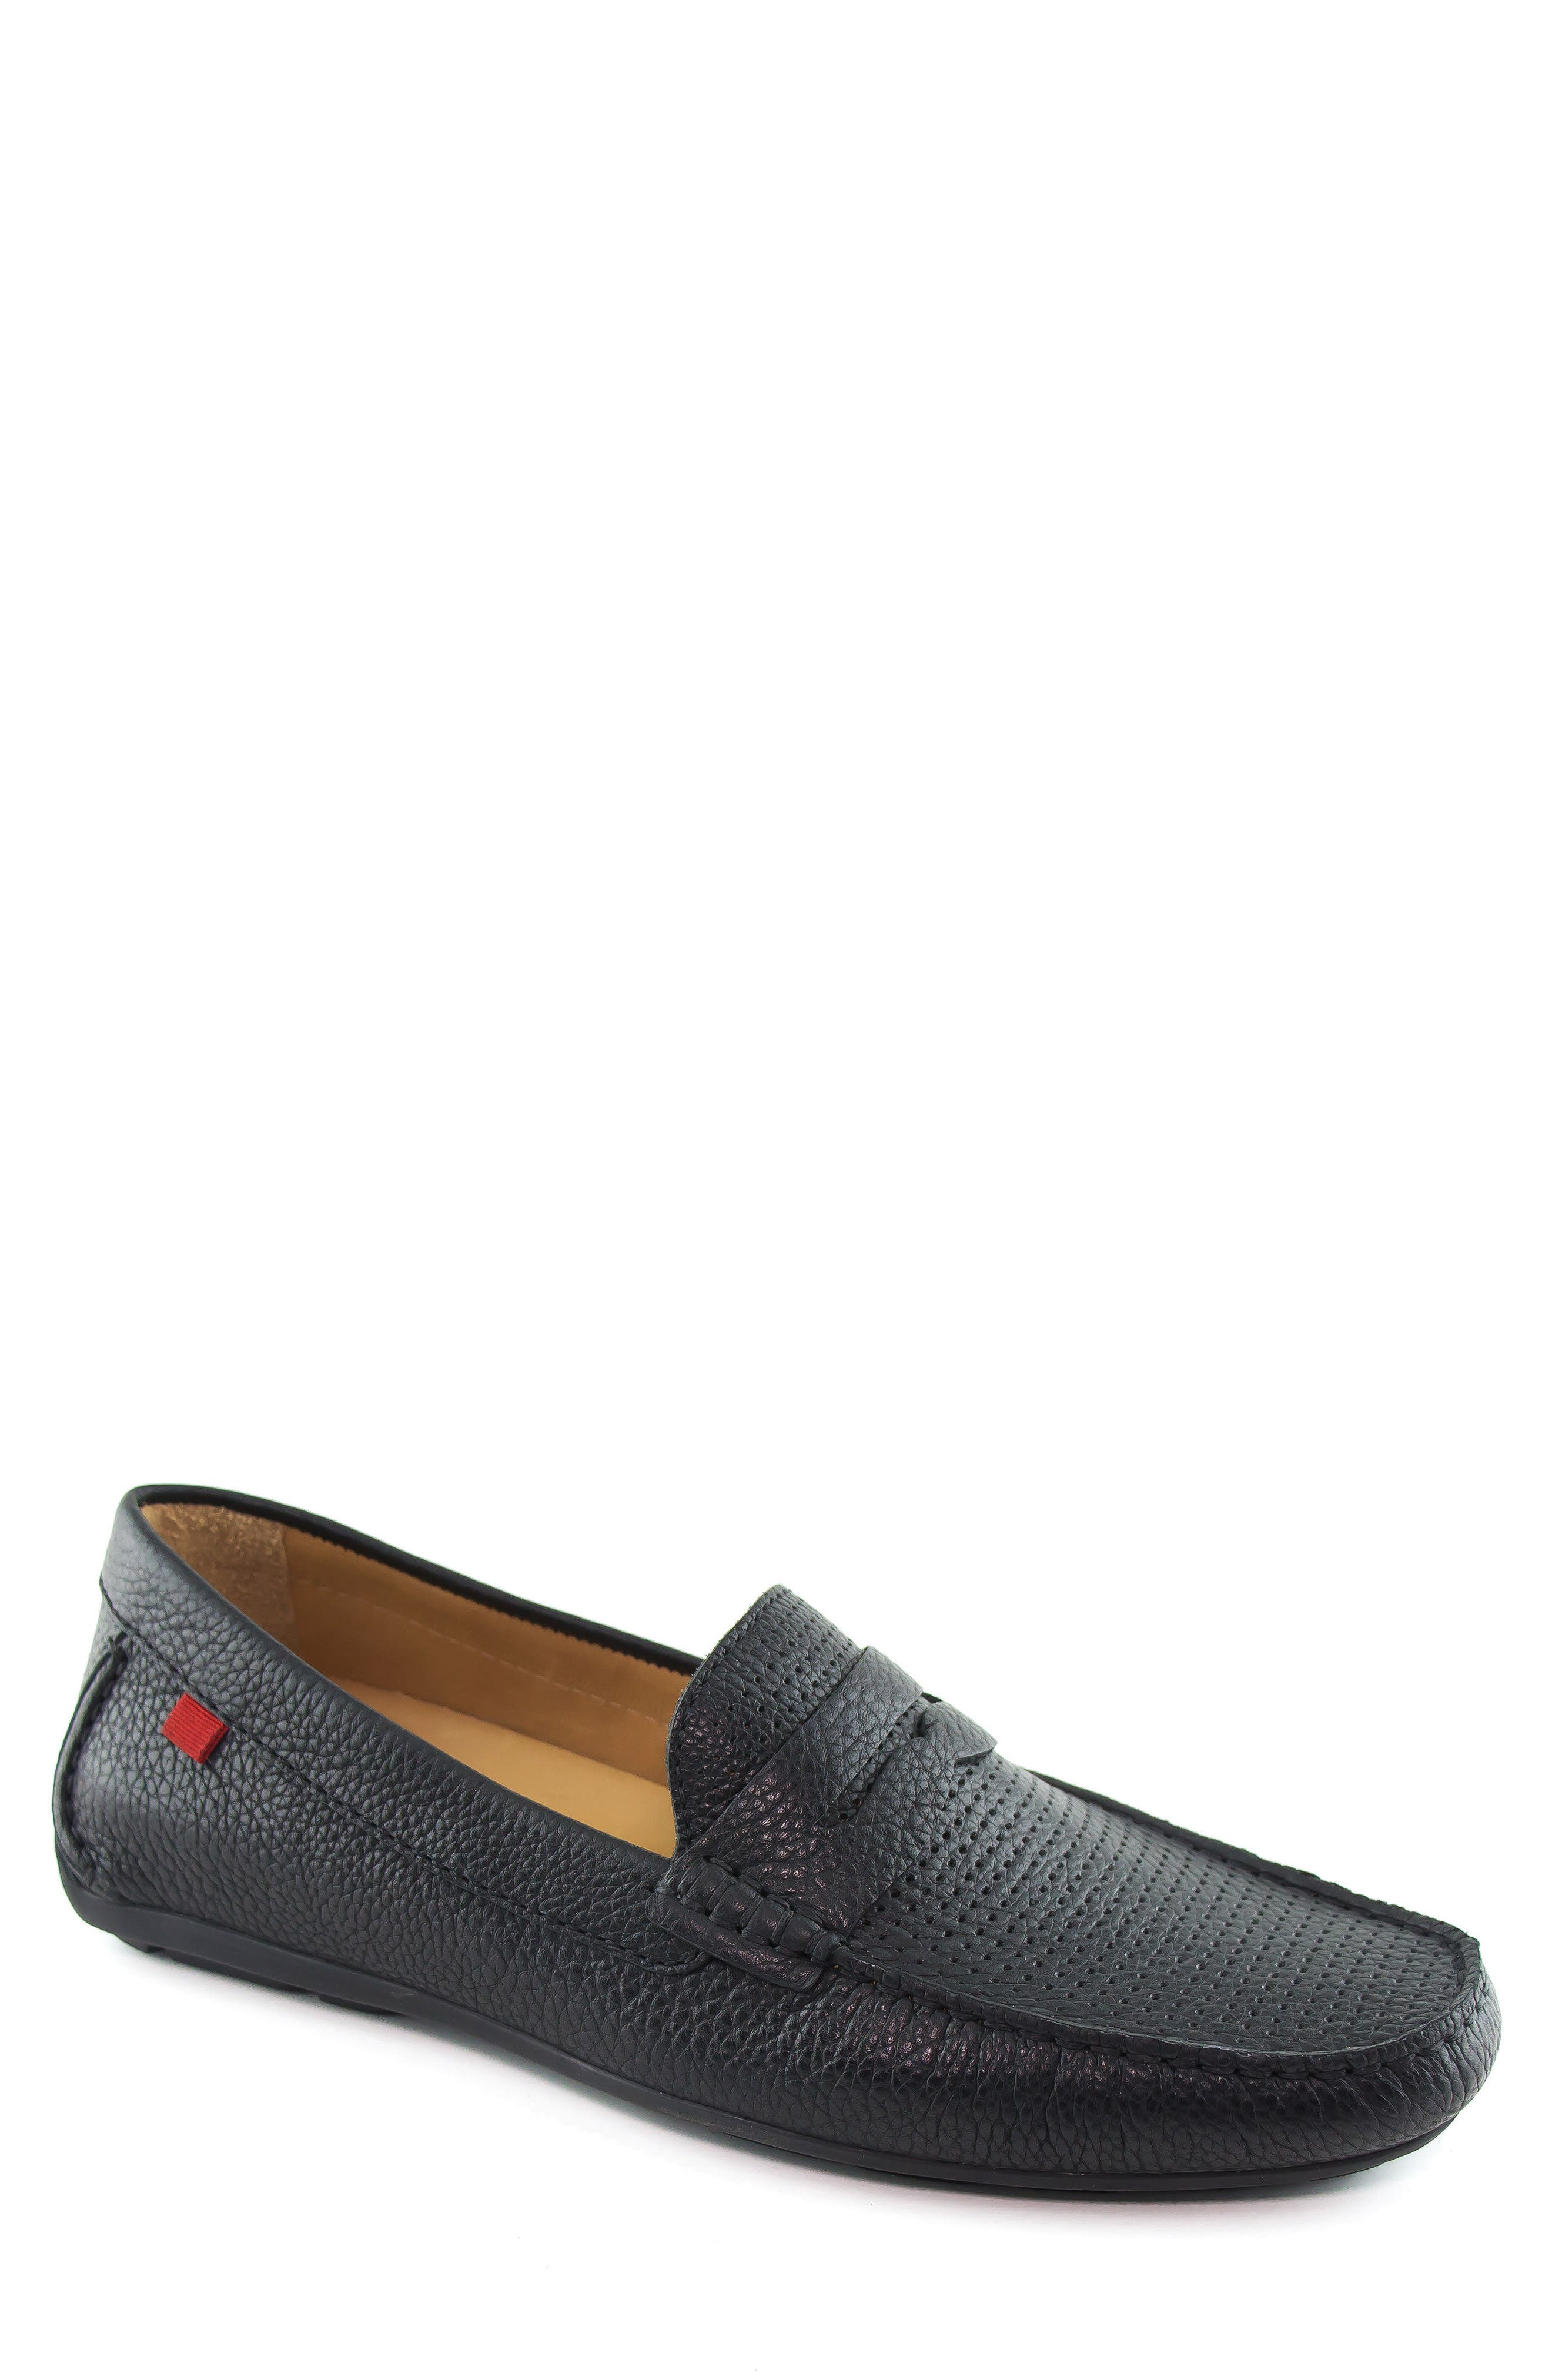 MARC JOSEPH NEW YORK Union Street Driving Shoe, Main, color, BLACK